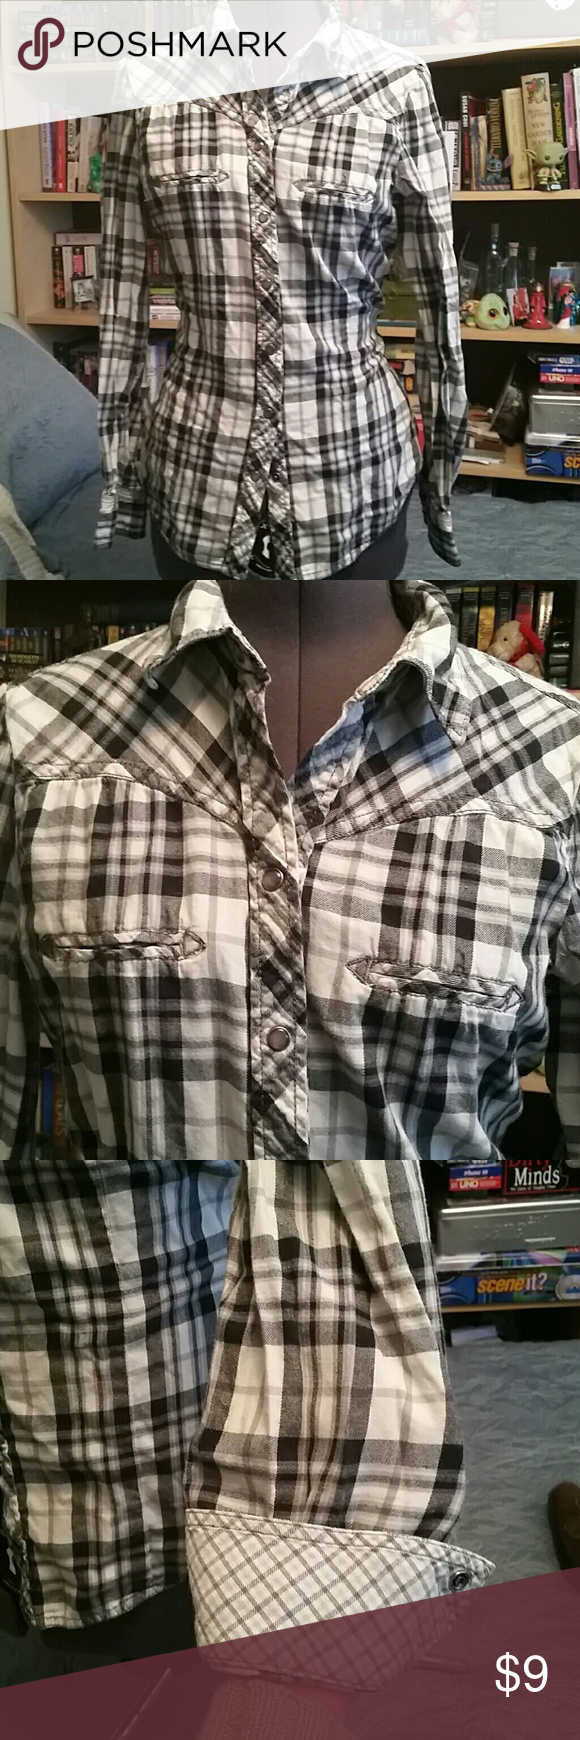 Flannel shirt cake  White grey black and sky blue flannel shirt Mostly white grey